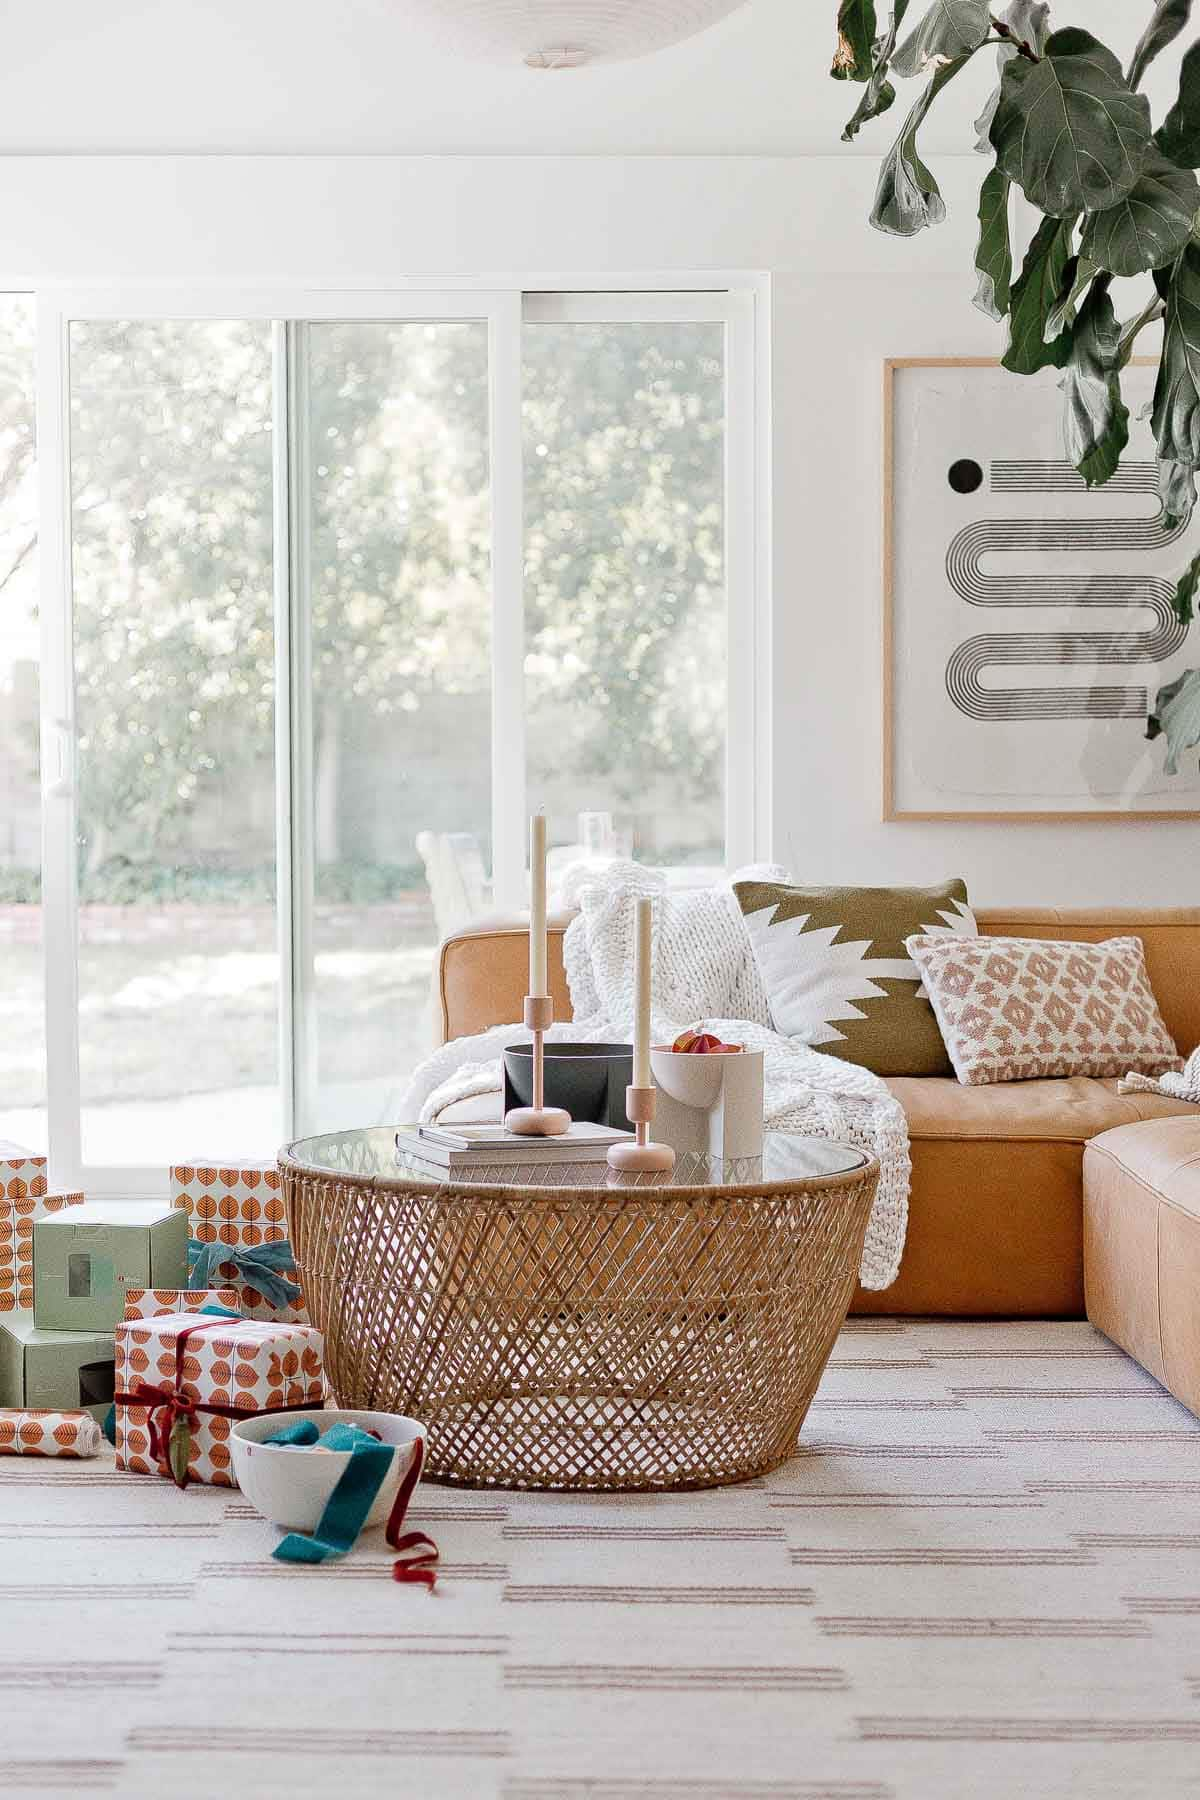 Winter home accessories and wrapped gifts for the holidays in a bohemian living room.